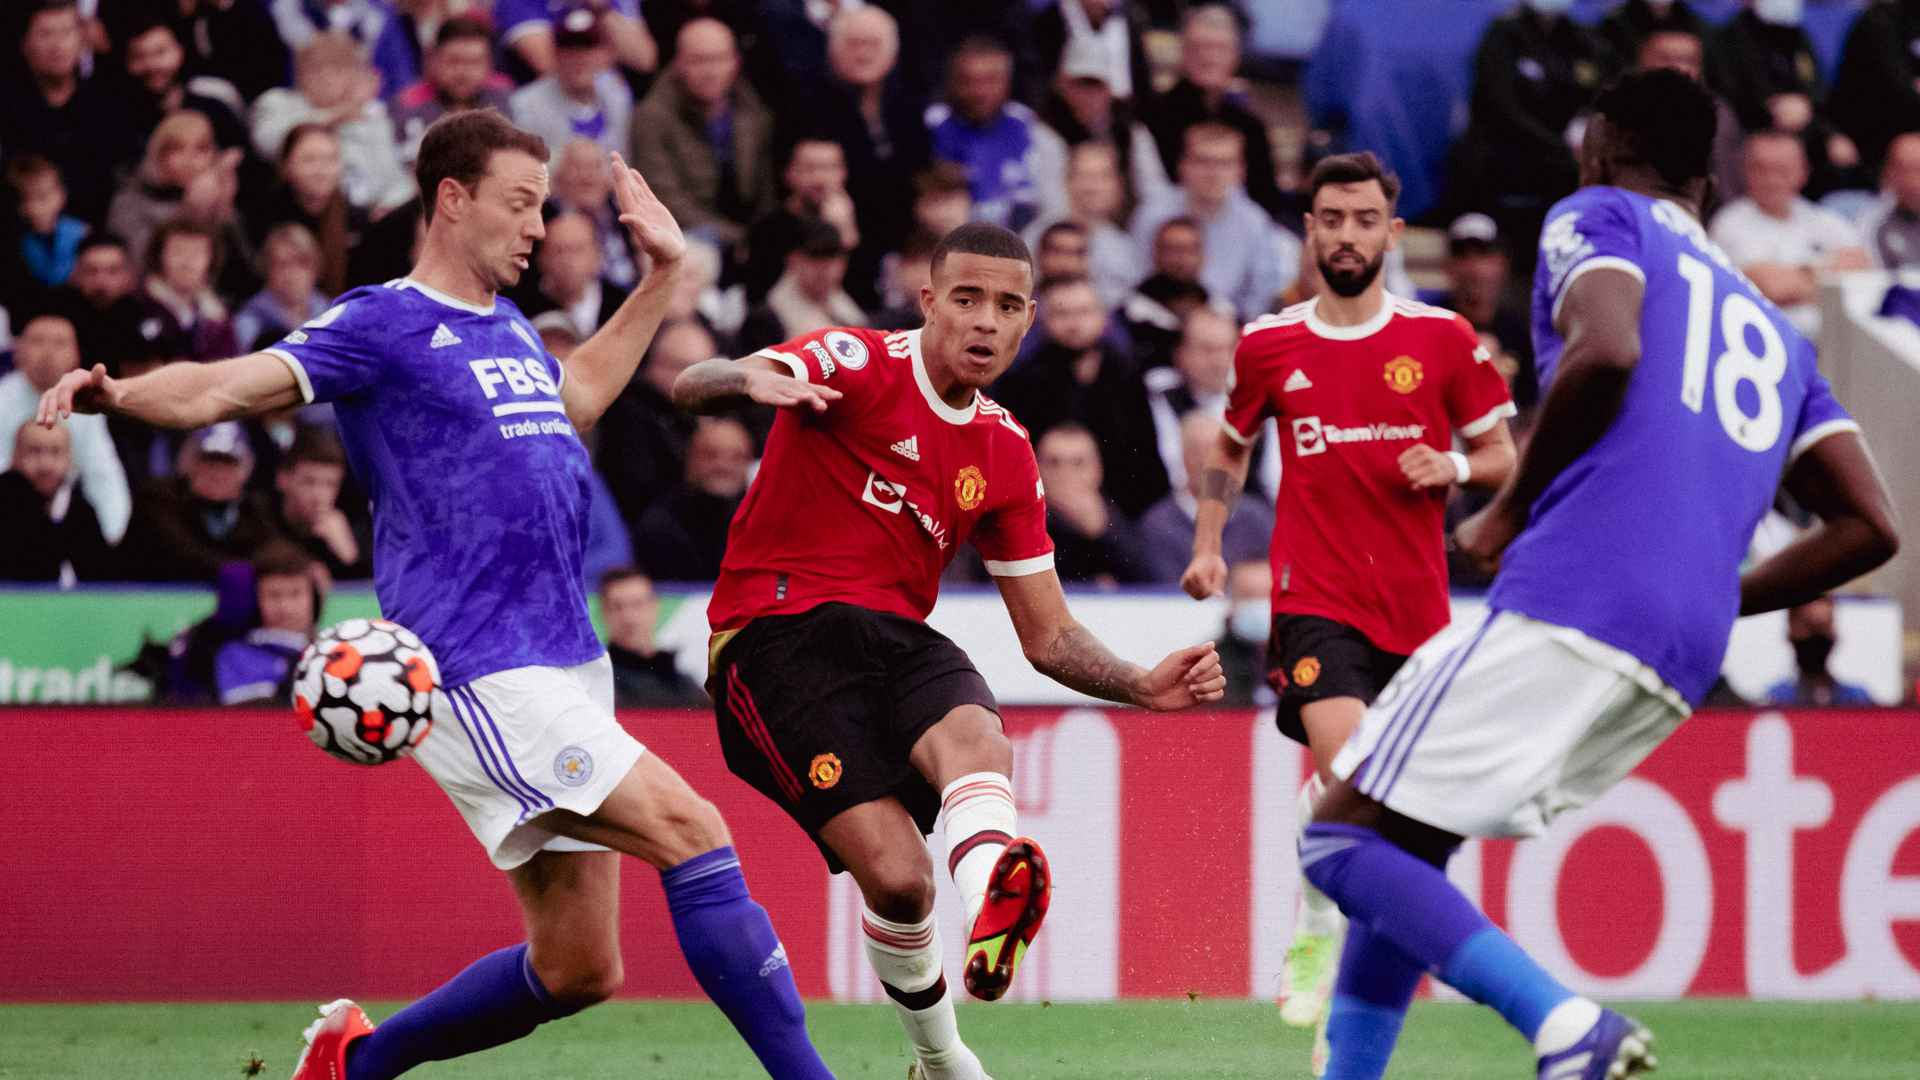 Match Report: Leicester 4 United 2